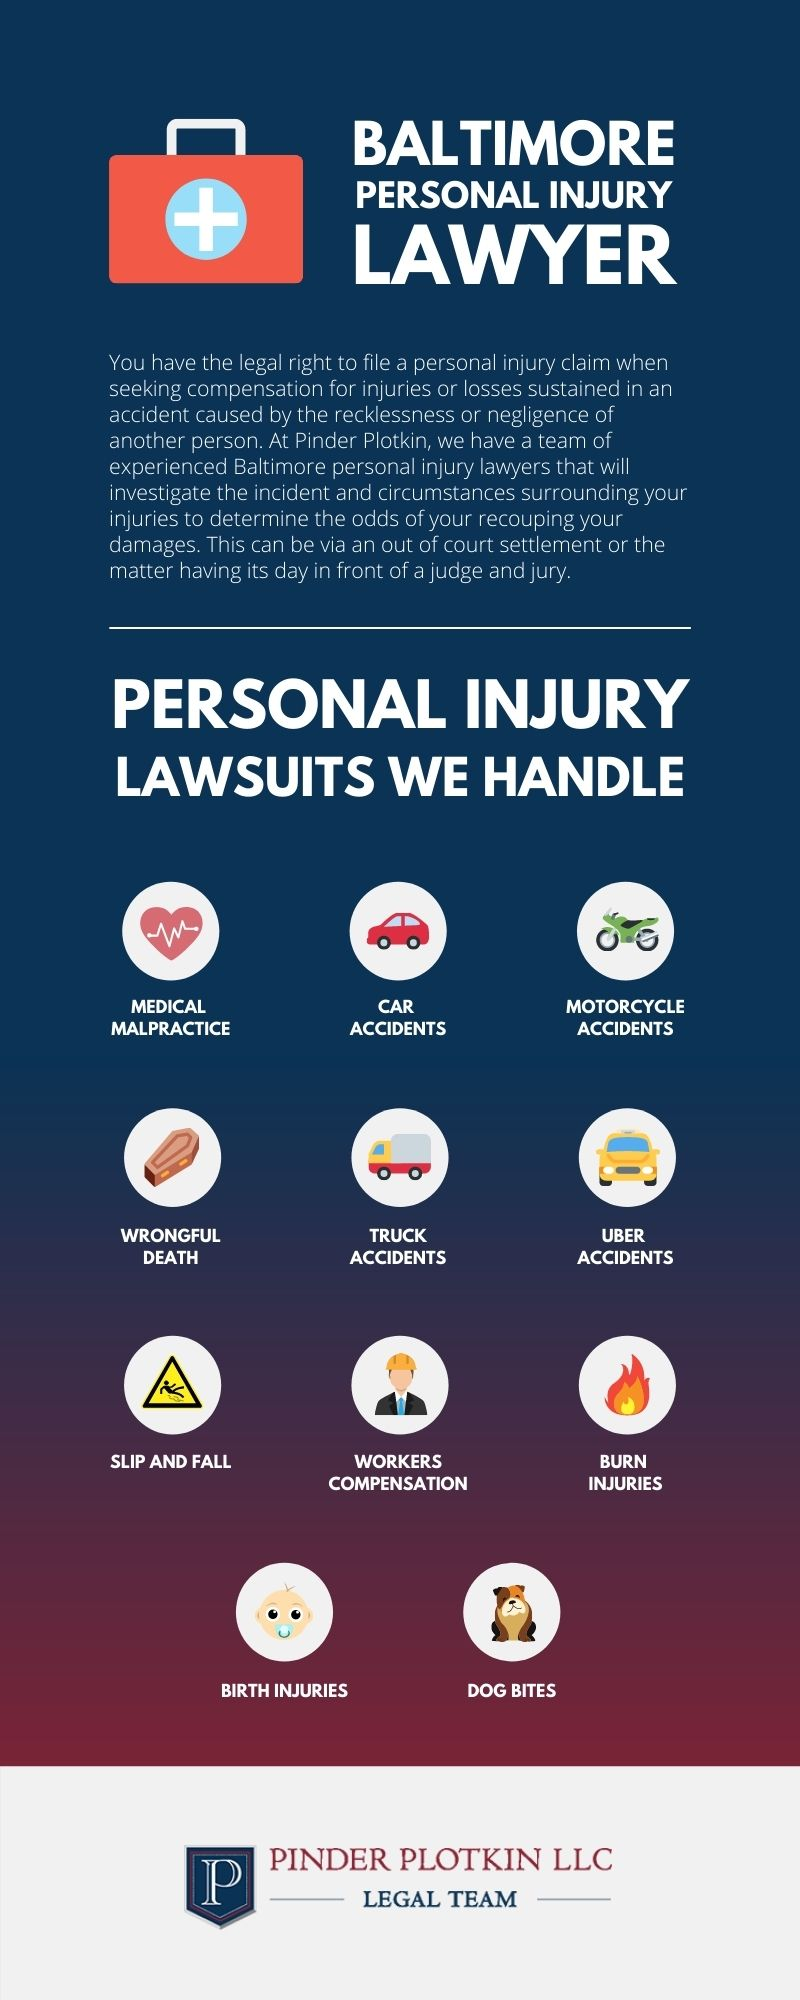 Baltimore Personal Injury Lawyer Infographic